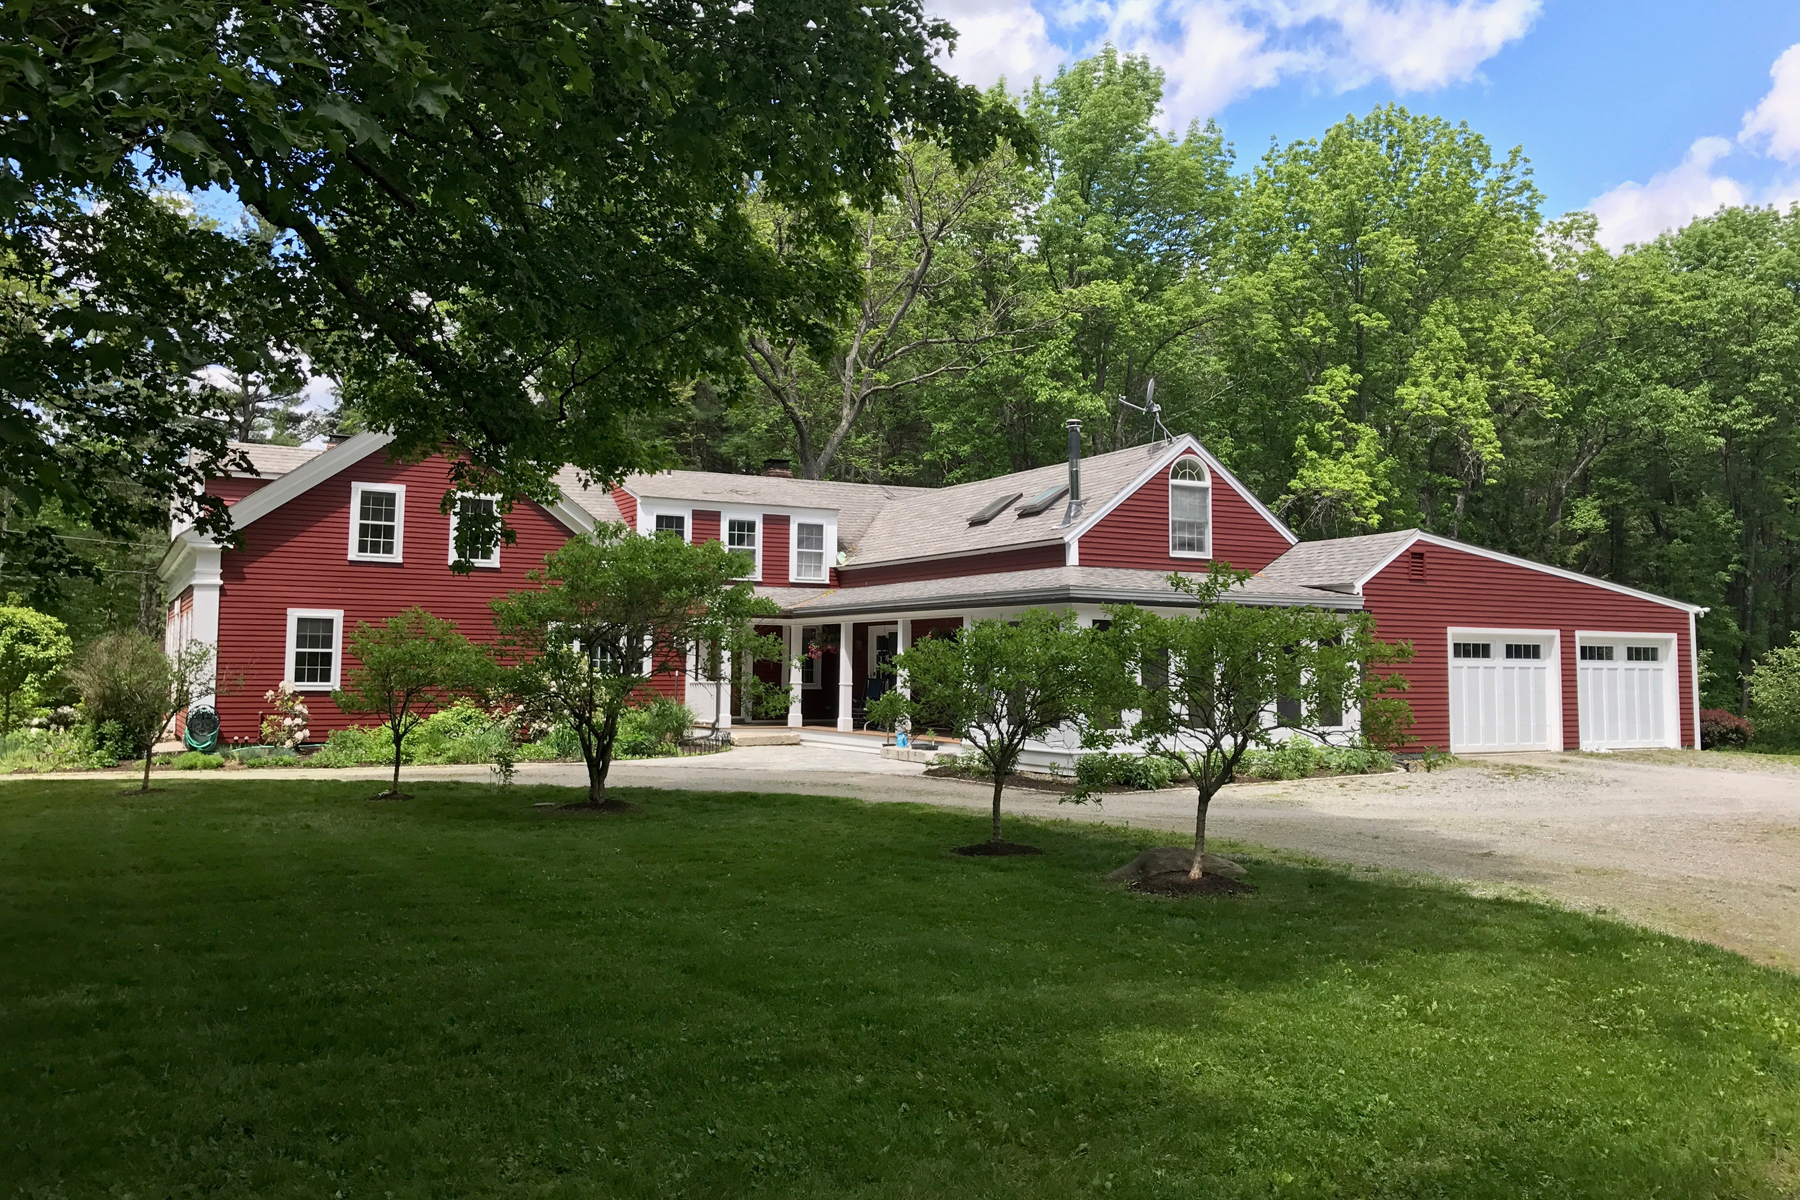 Single Family Home for Sale at 13 Journeys End Road, Francestown 13 Journeys End Rd Francestown, New Hampshire 03043 United States